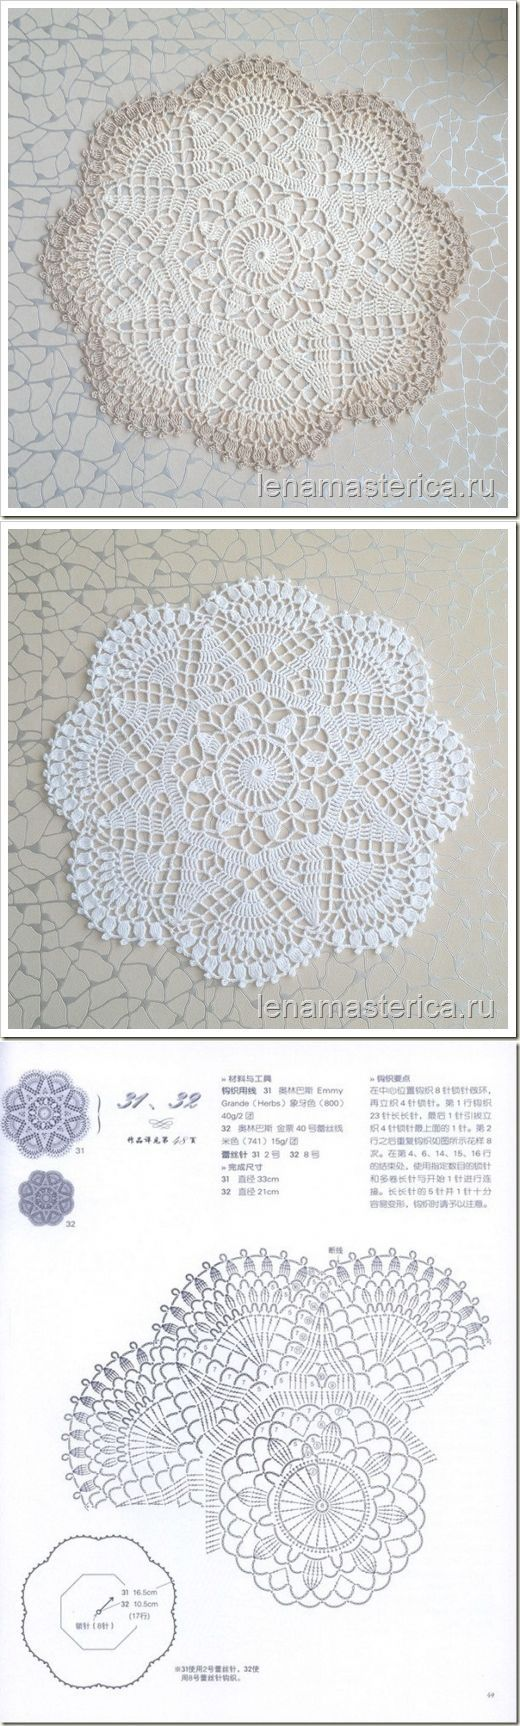 22 best Doilies images on Pinterest | Doilies crochet, Doilies and ...